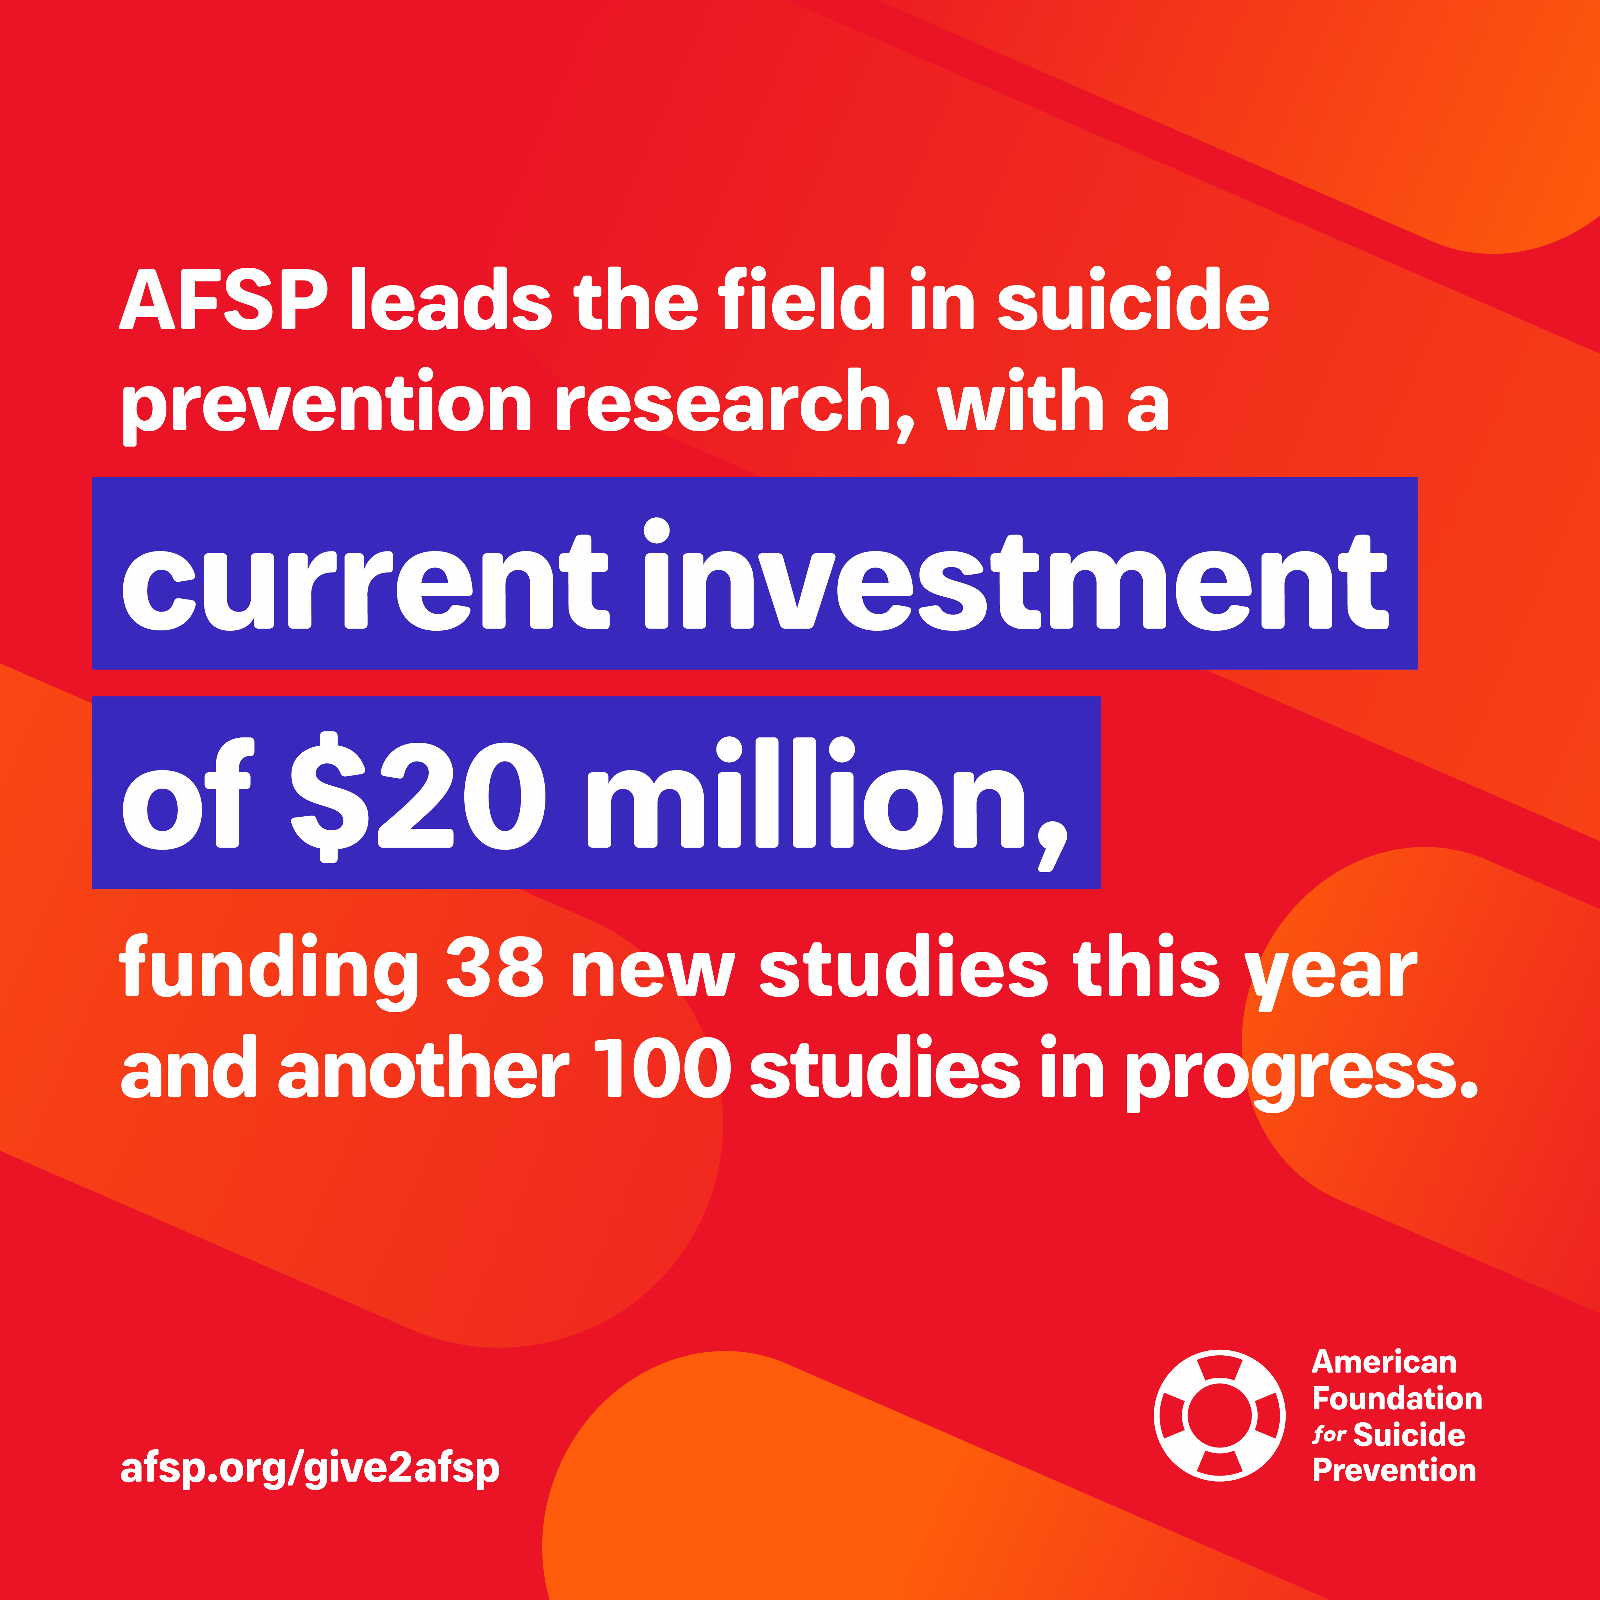 AFSP leads the field in suicide prevention research, with a current investment of $20 million, funding 38 new studies this year and another 100 studies in progress